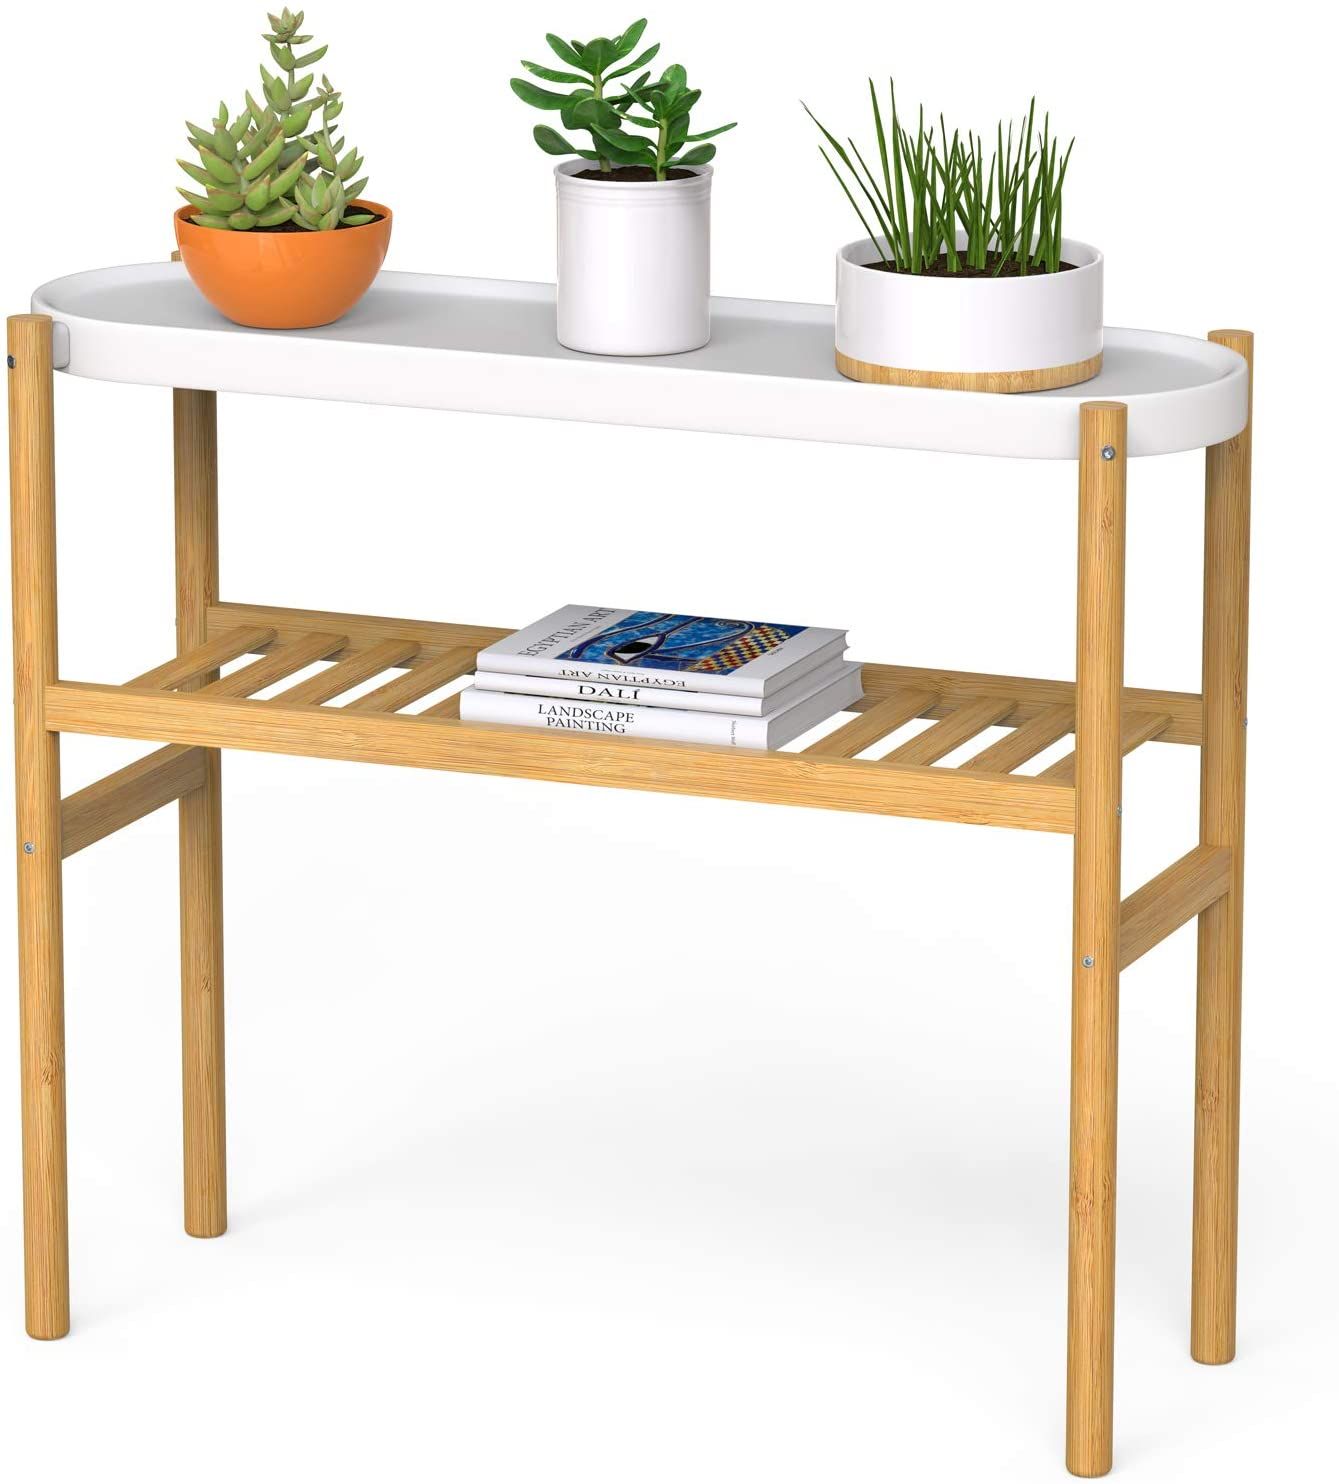 Bamboo Plant Stands Indoor, 2 Tier Tall Plant Stand Holder & Plant Display Shelves for Outdoor Garden